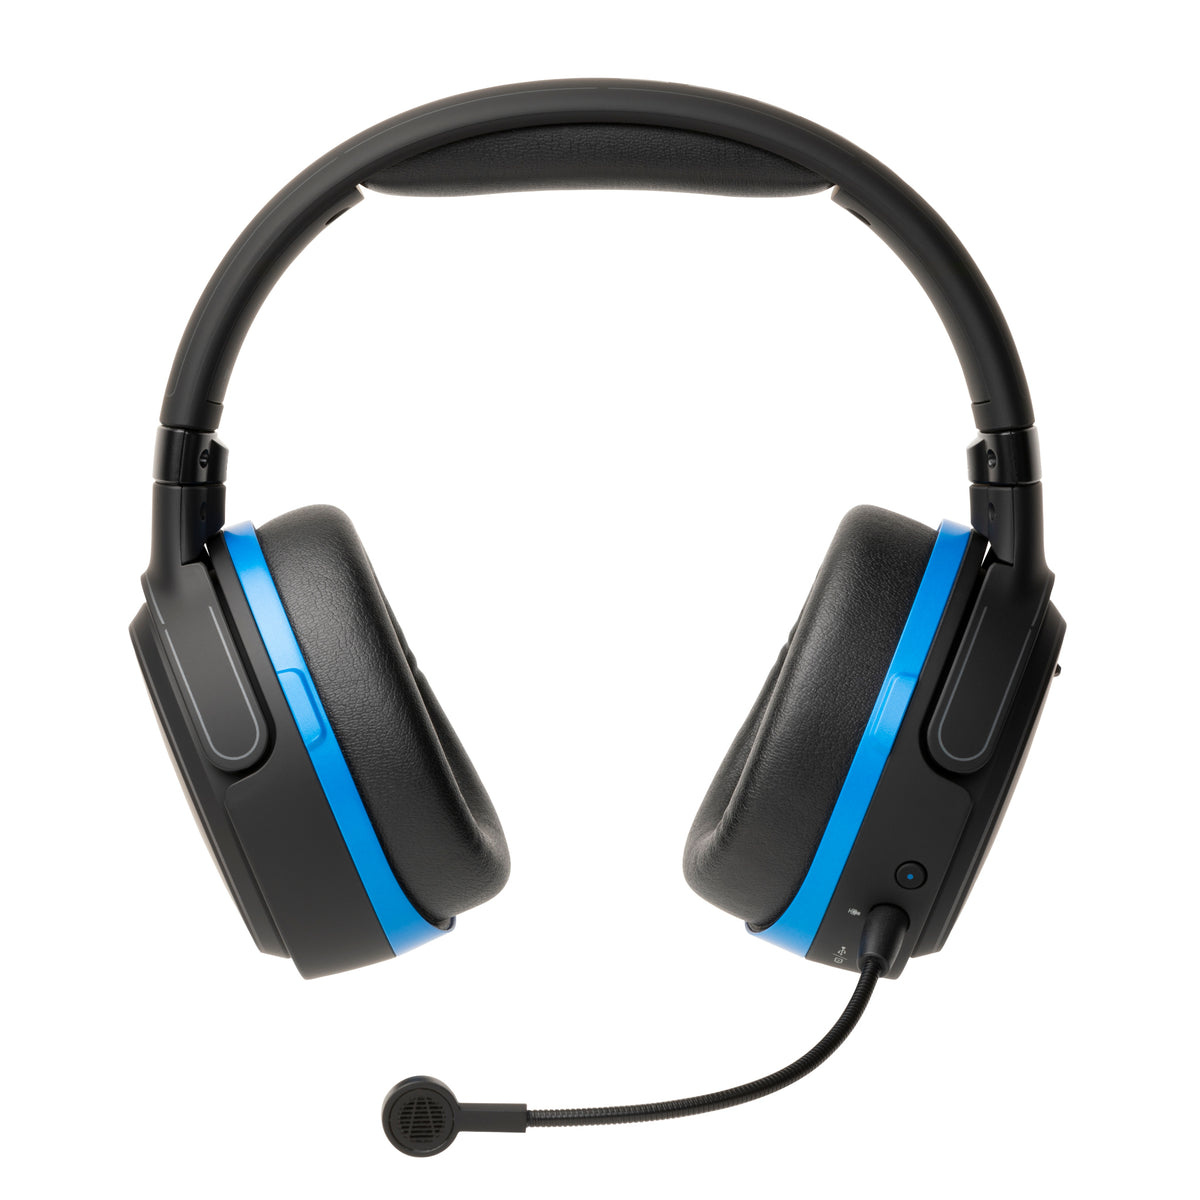 Audeze Penrose Wireless Audiophile Gaming Headphones for Playstation 4/5, PC and Mac - Refurbished